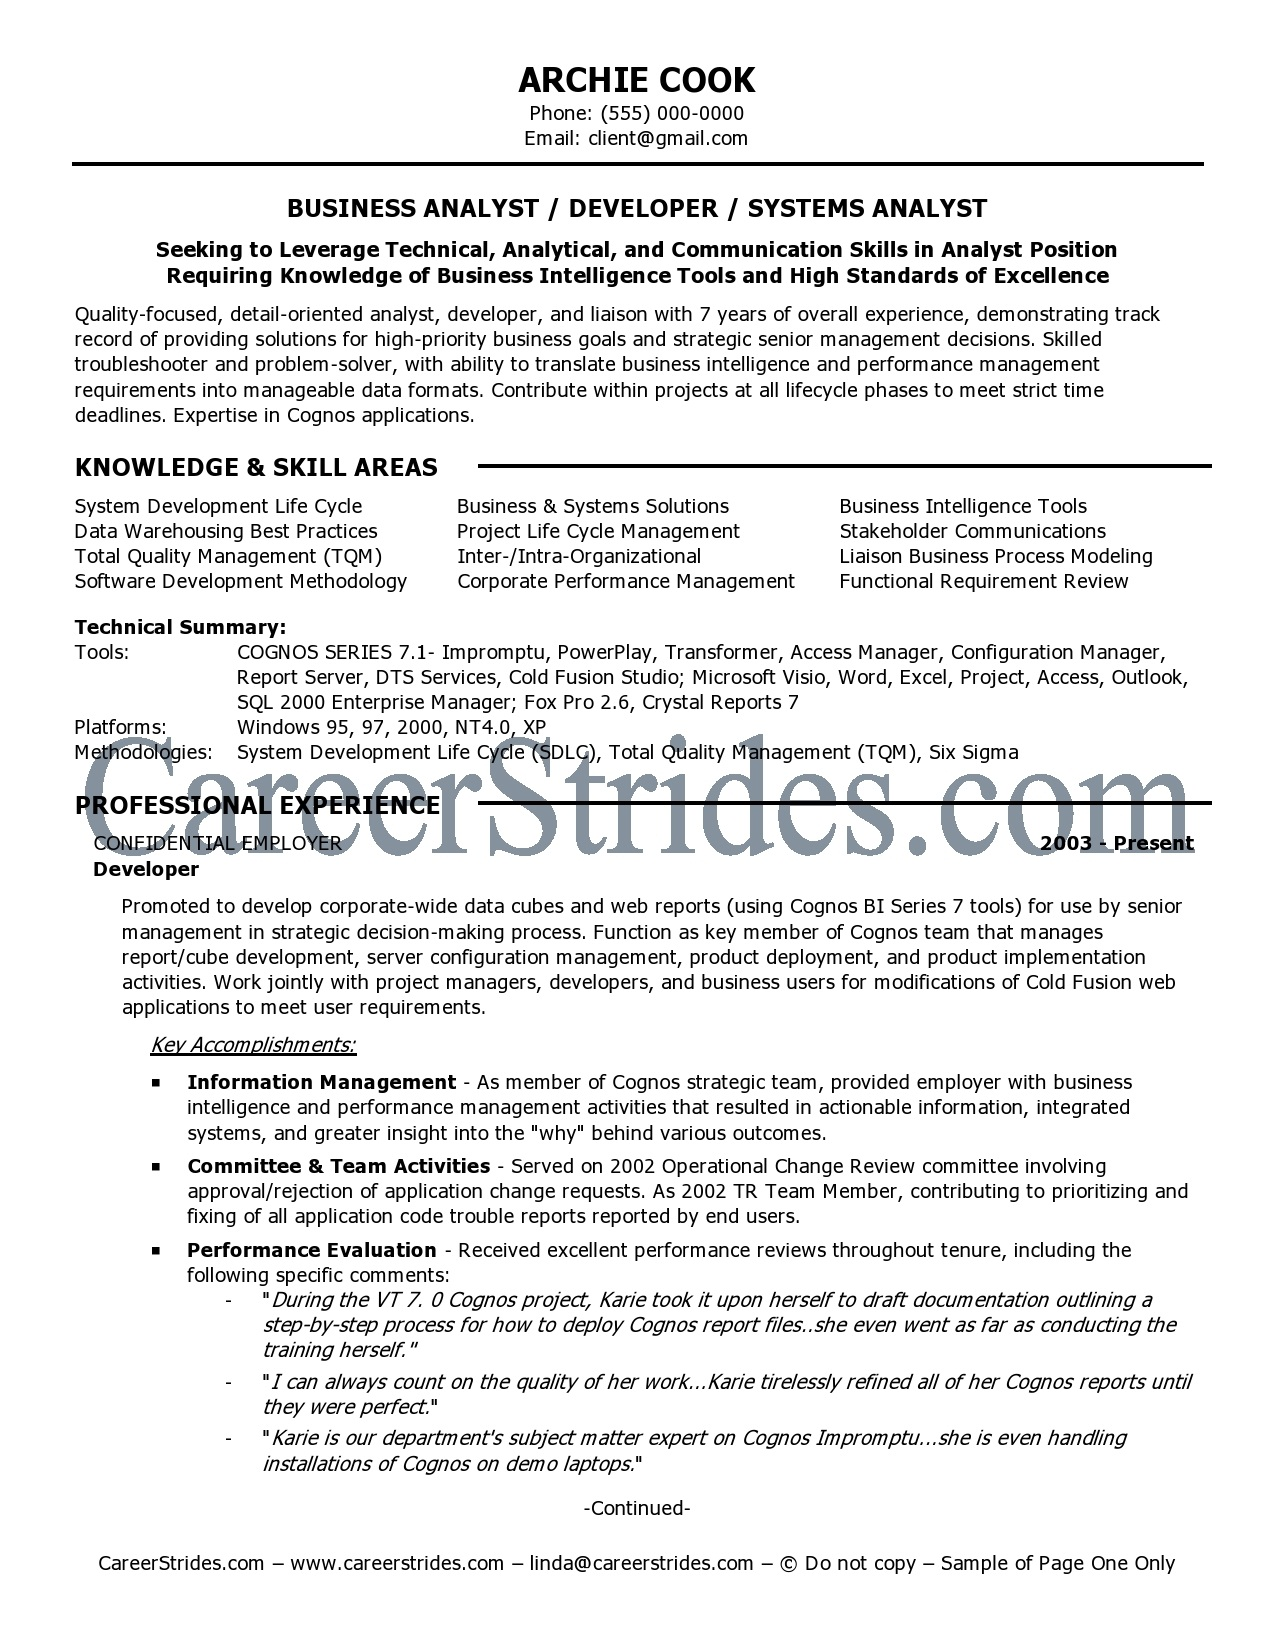 business objects analyst cv resume samples writing guides business objects analyst cv business analyst interview questions and answers business analyst resume samples project analyst